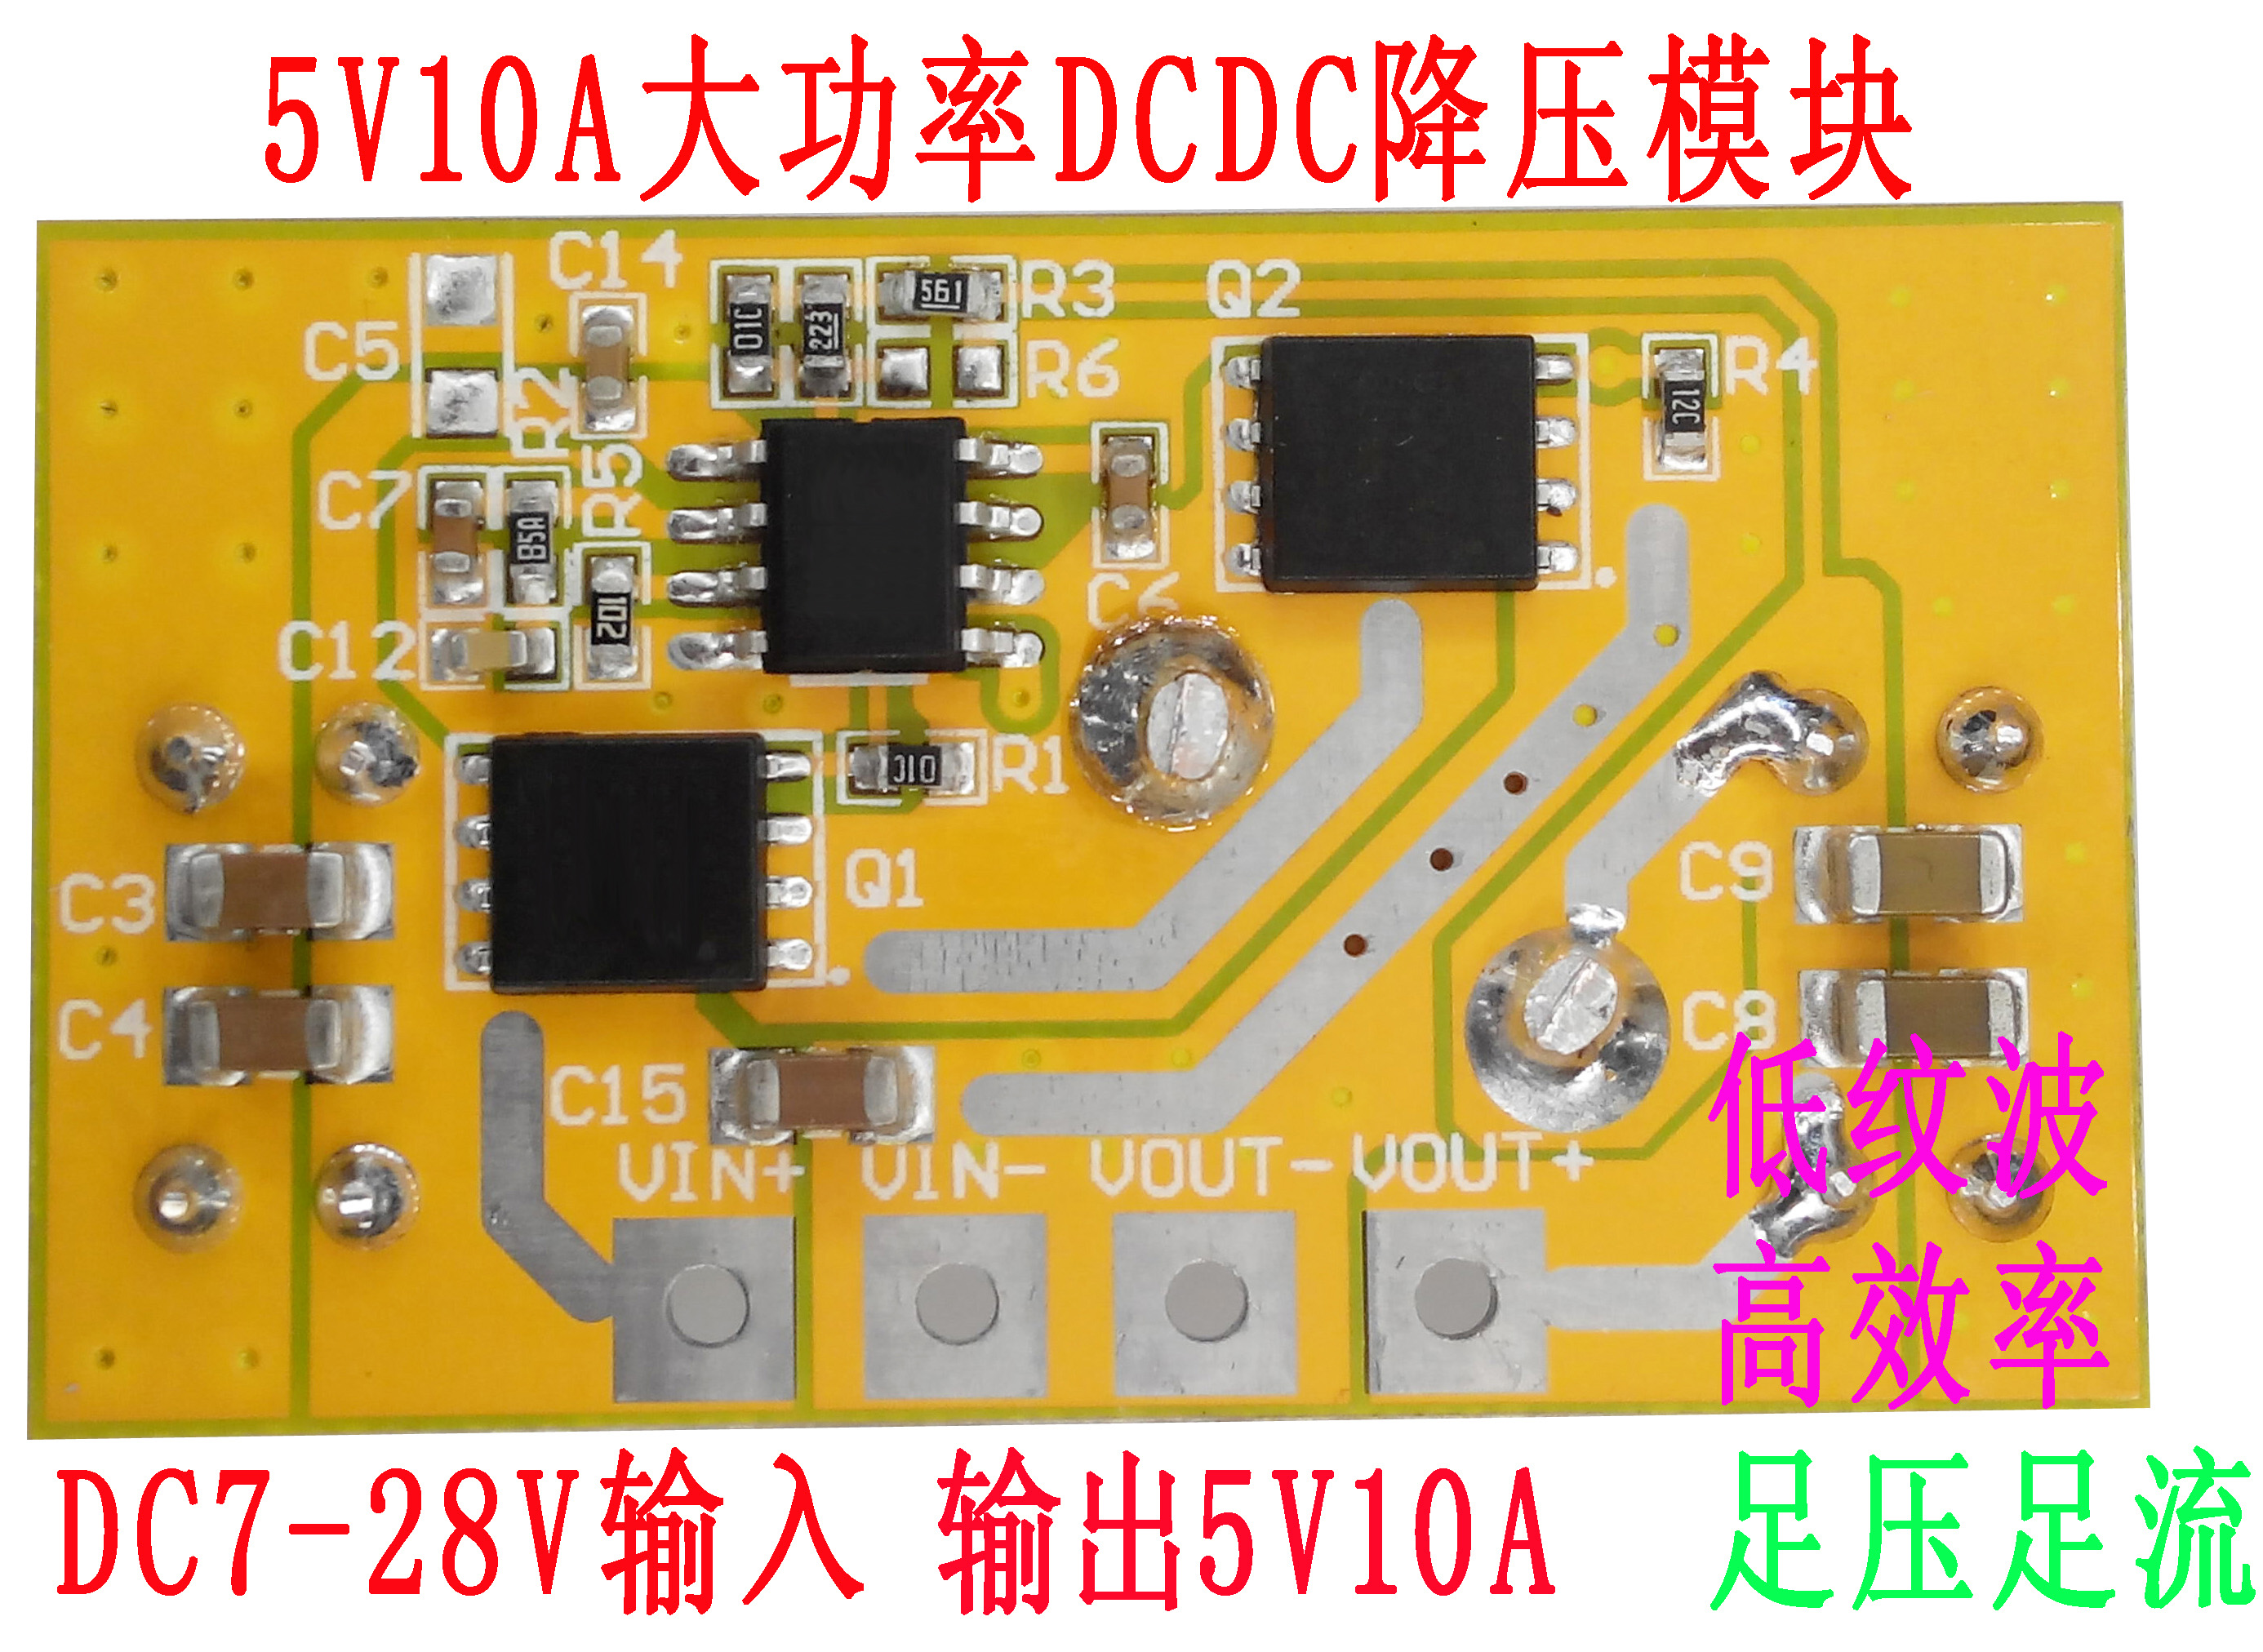 5V10A DC-DC High-power Buck Module, On-board Power Supply, 24V to 5V Power, 12V to 5V Module dc dc buck boost module for solar battery board red lm2577s lm2596s